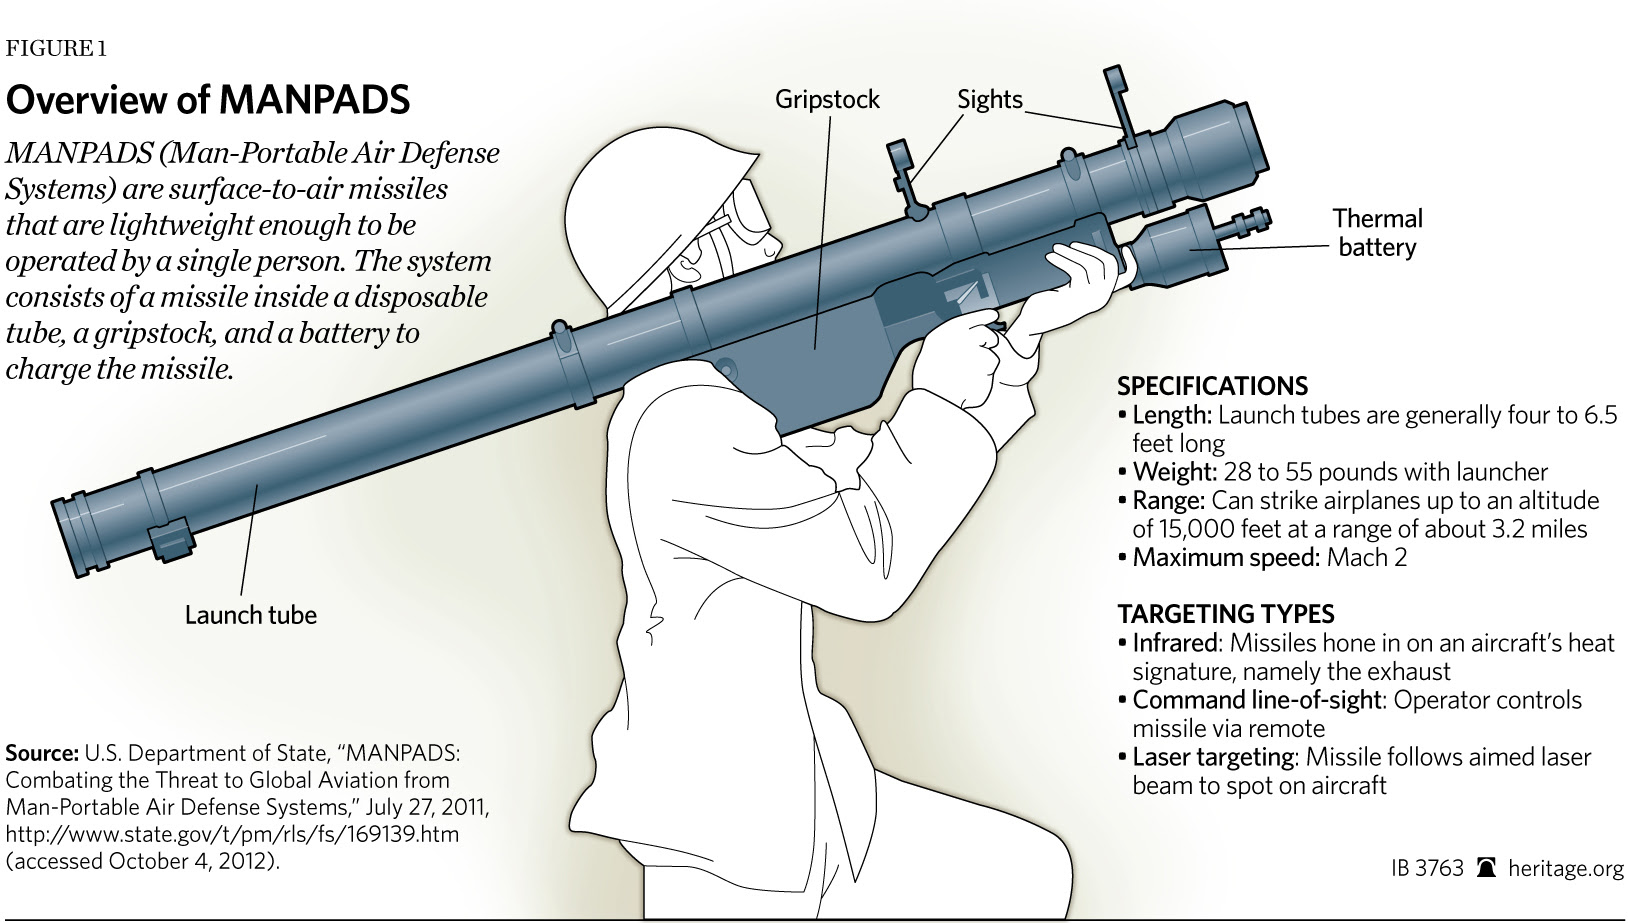 30 MANPADS now in Syria, and number is growing